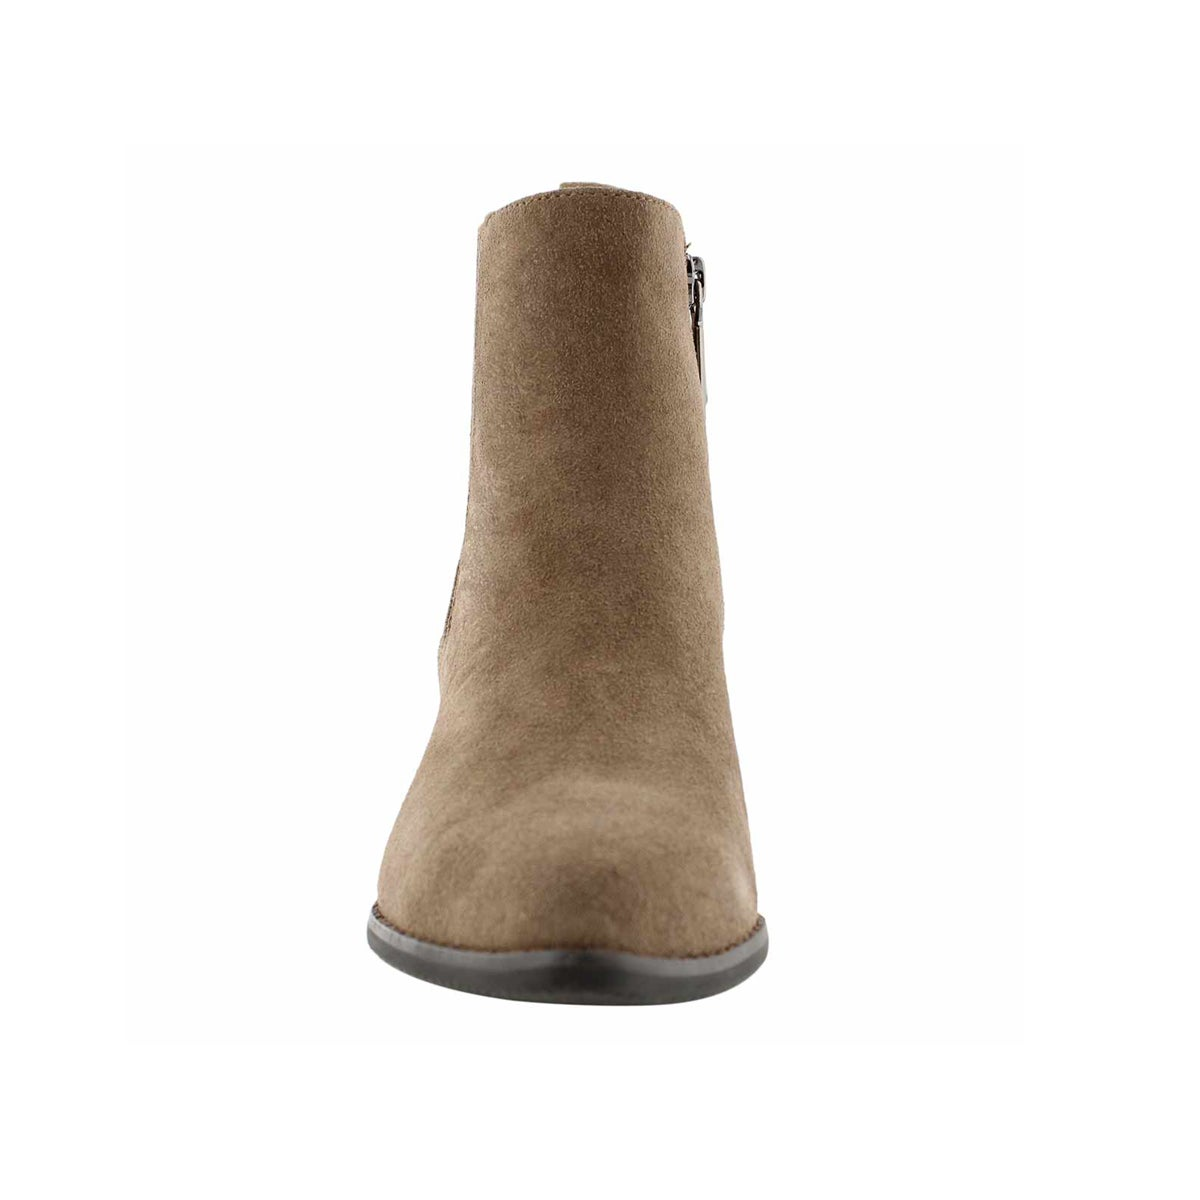 Lds Elvina dark taupe wtpf ankle boot